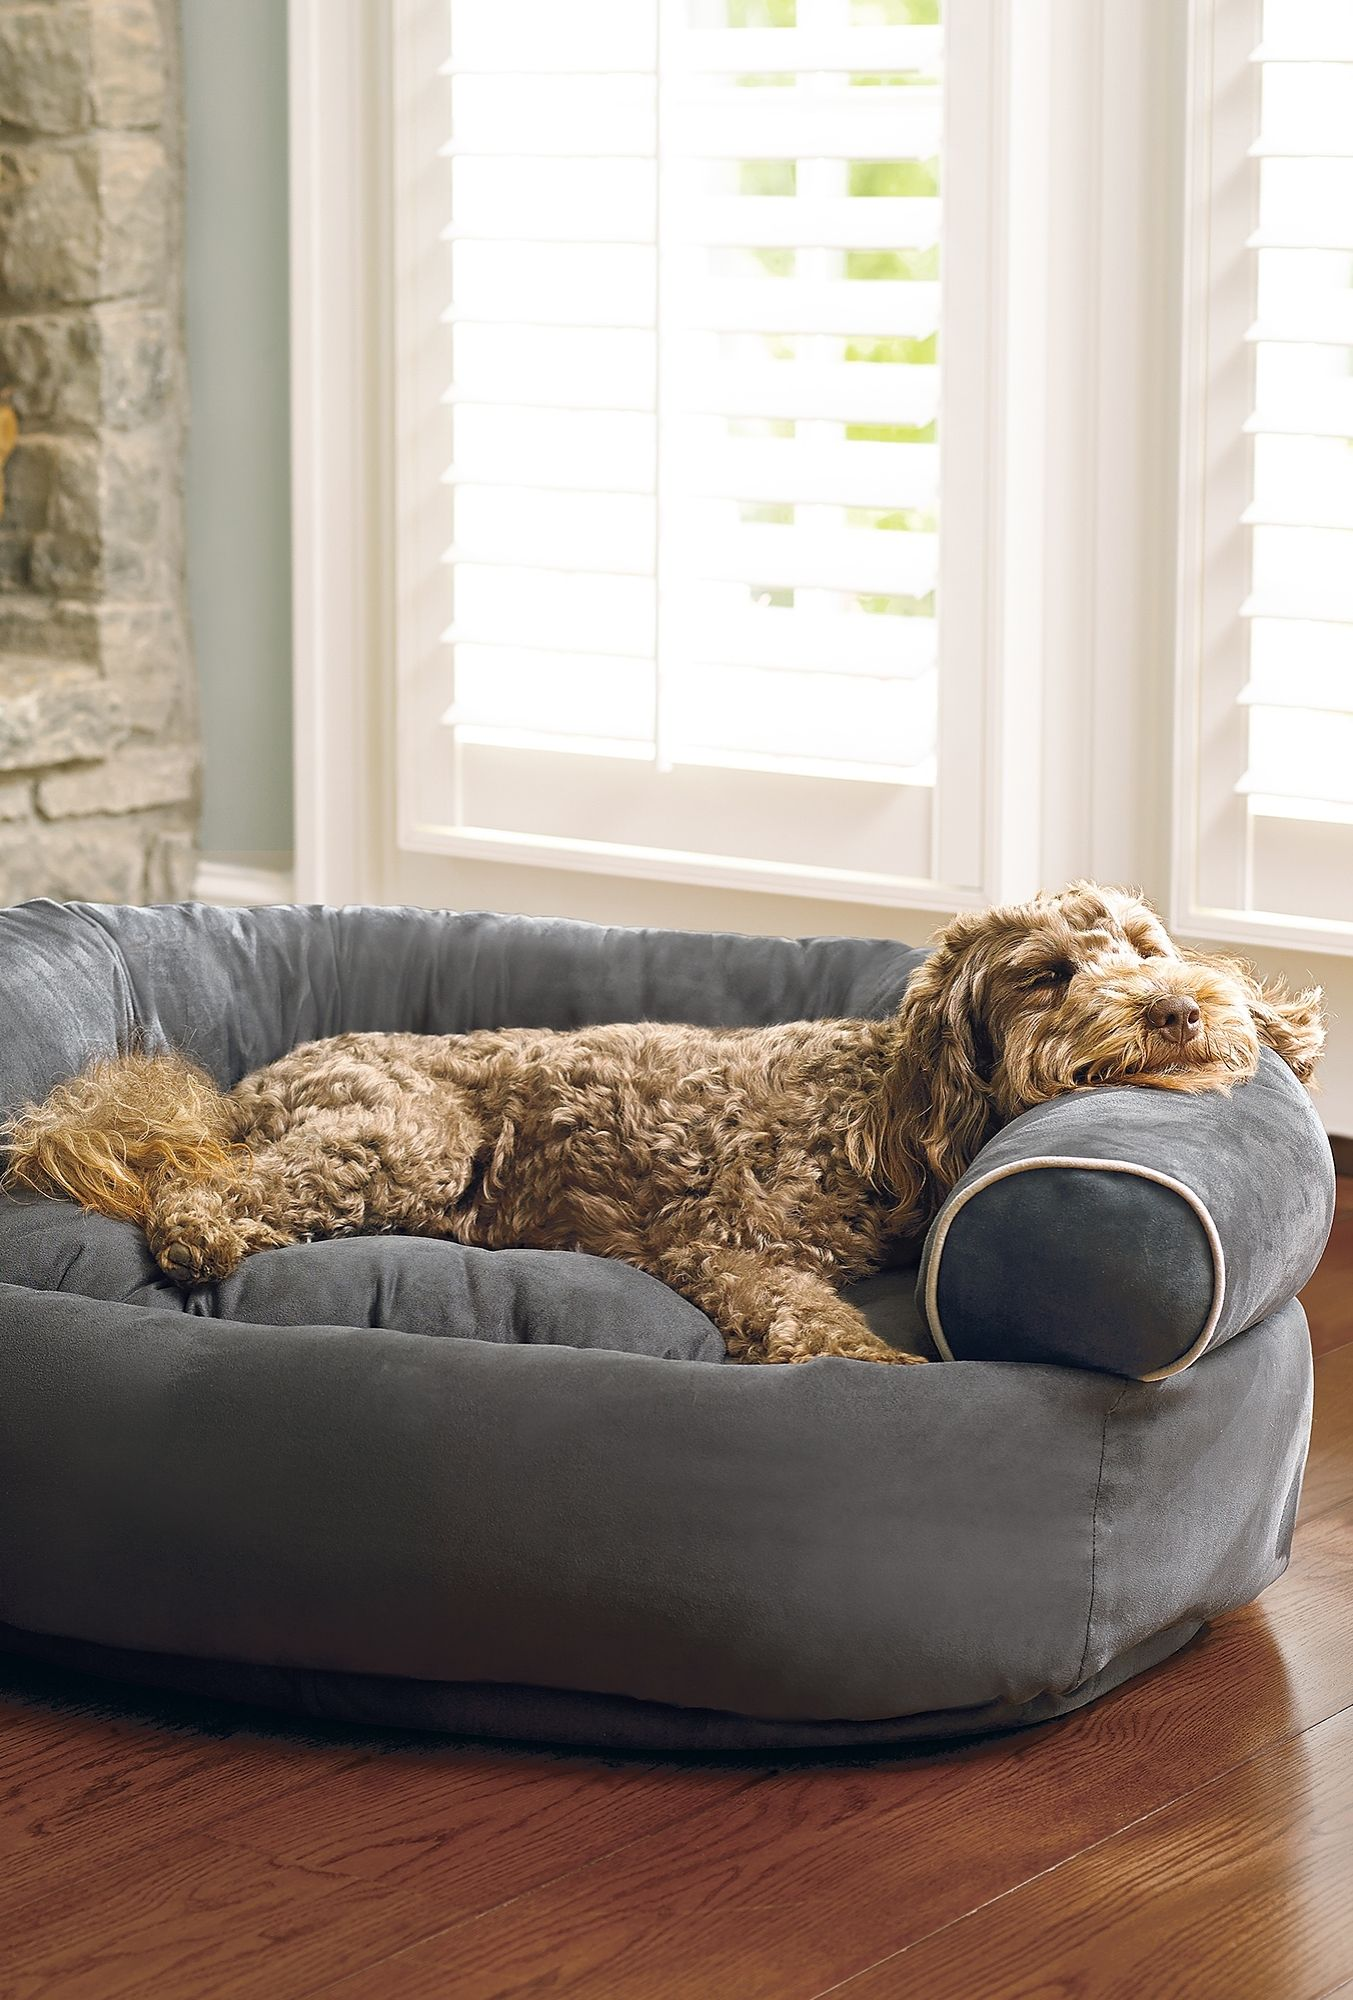 Double your pet's comfort with the tufted, orthopedic ...